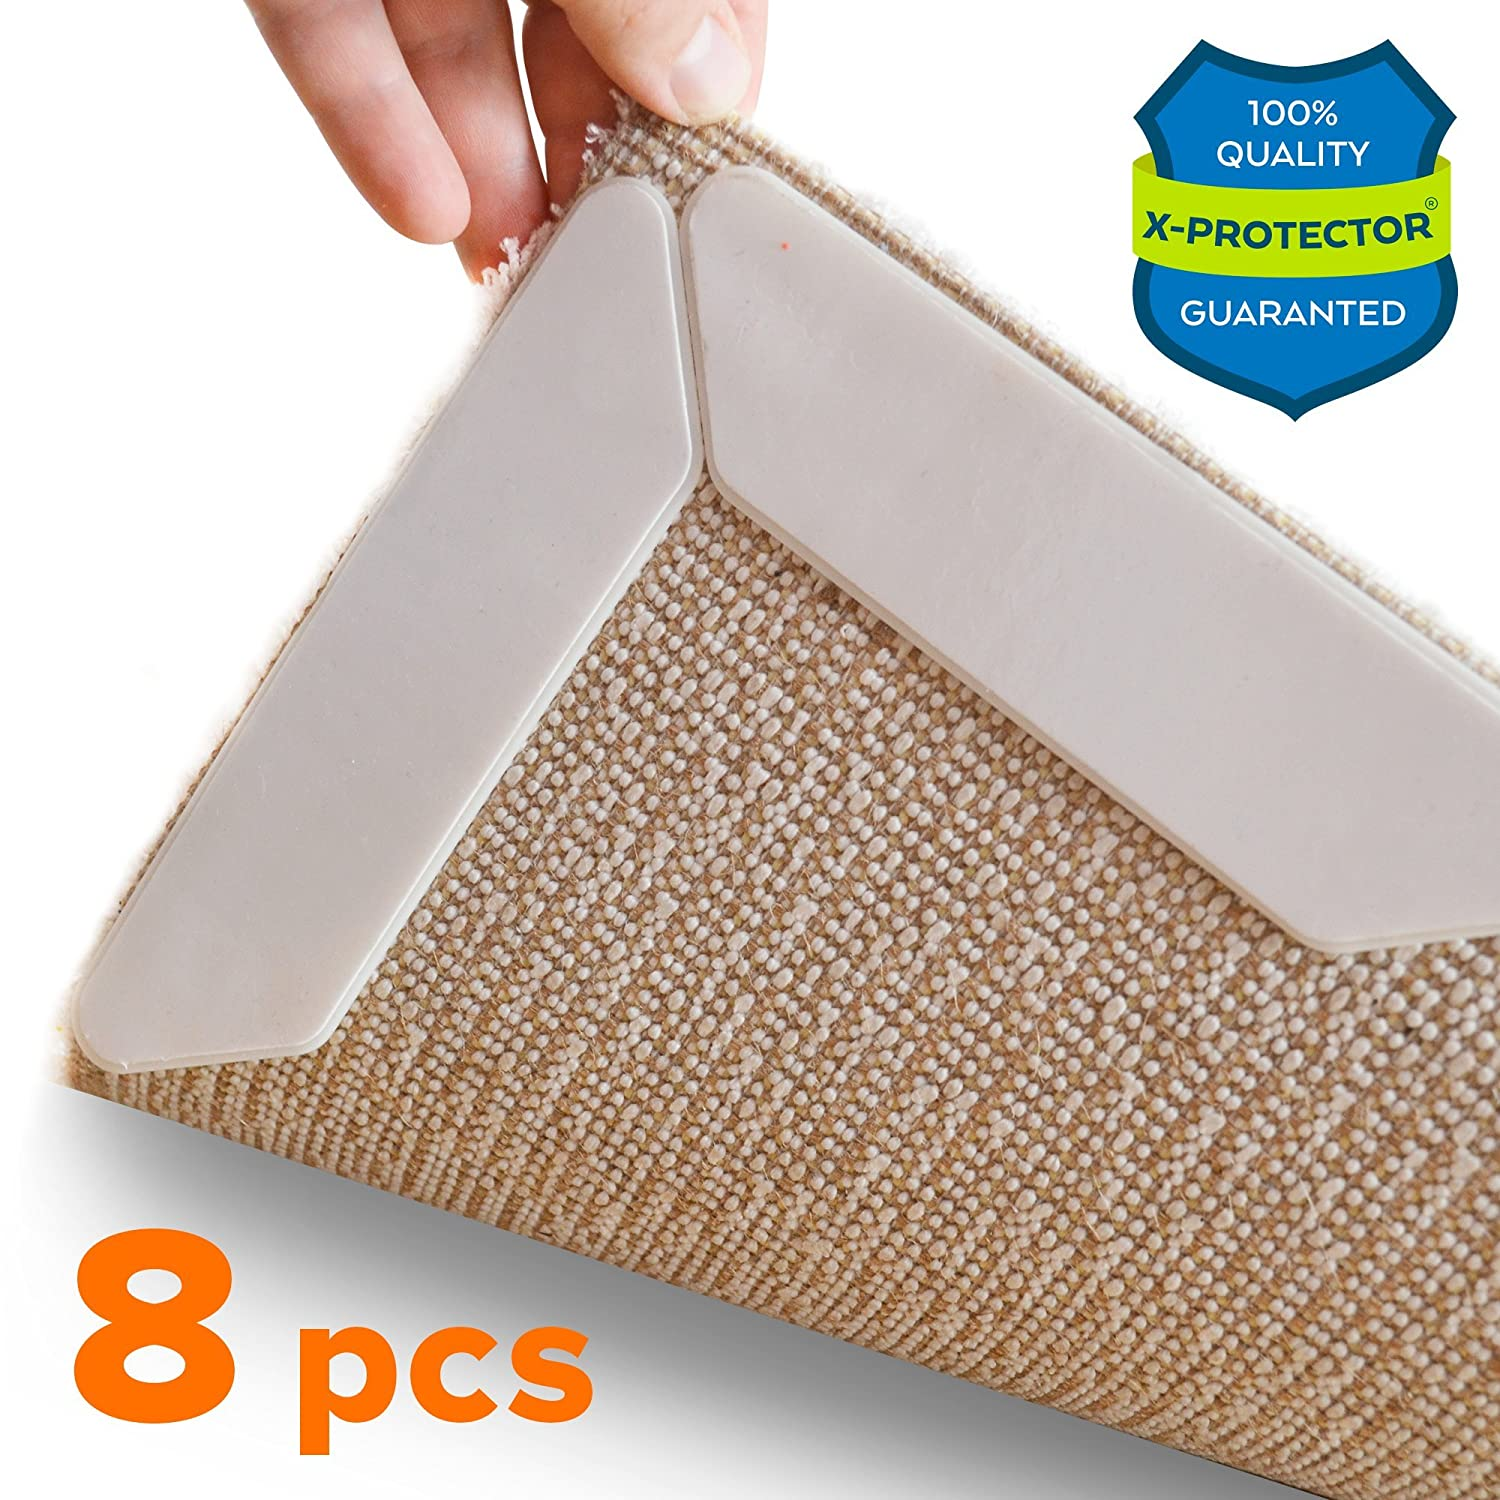 Keeps Your Rug In Place U0026 Makes Corners Flat. Premium Carpet Gripper With  Renewable Gripper Tape U2013 Ideal Anti Slip Rug Pad ...